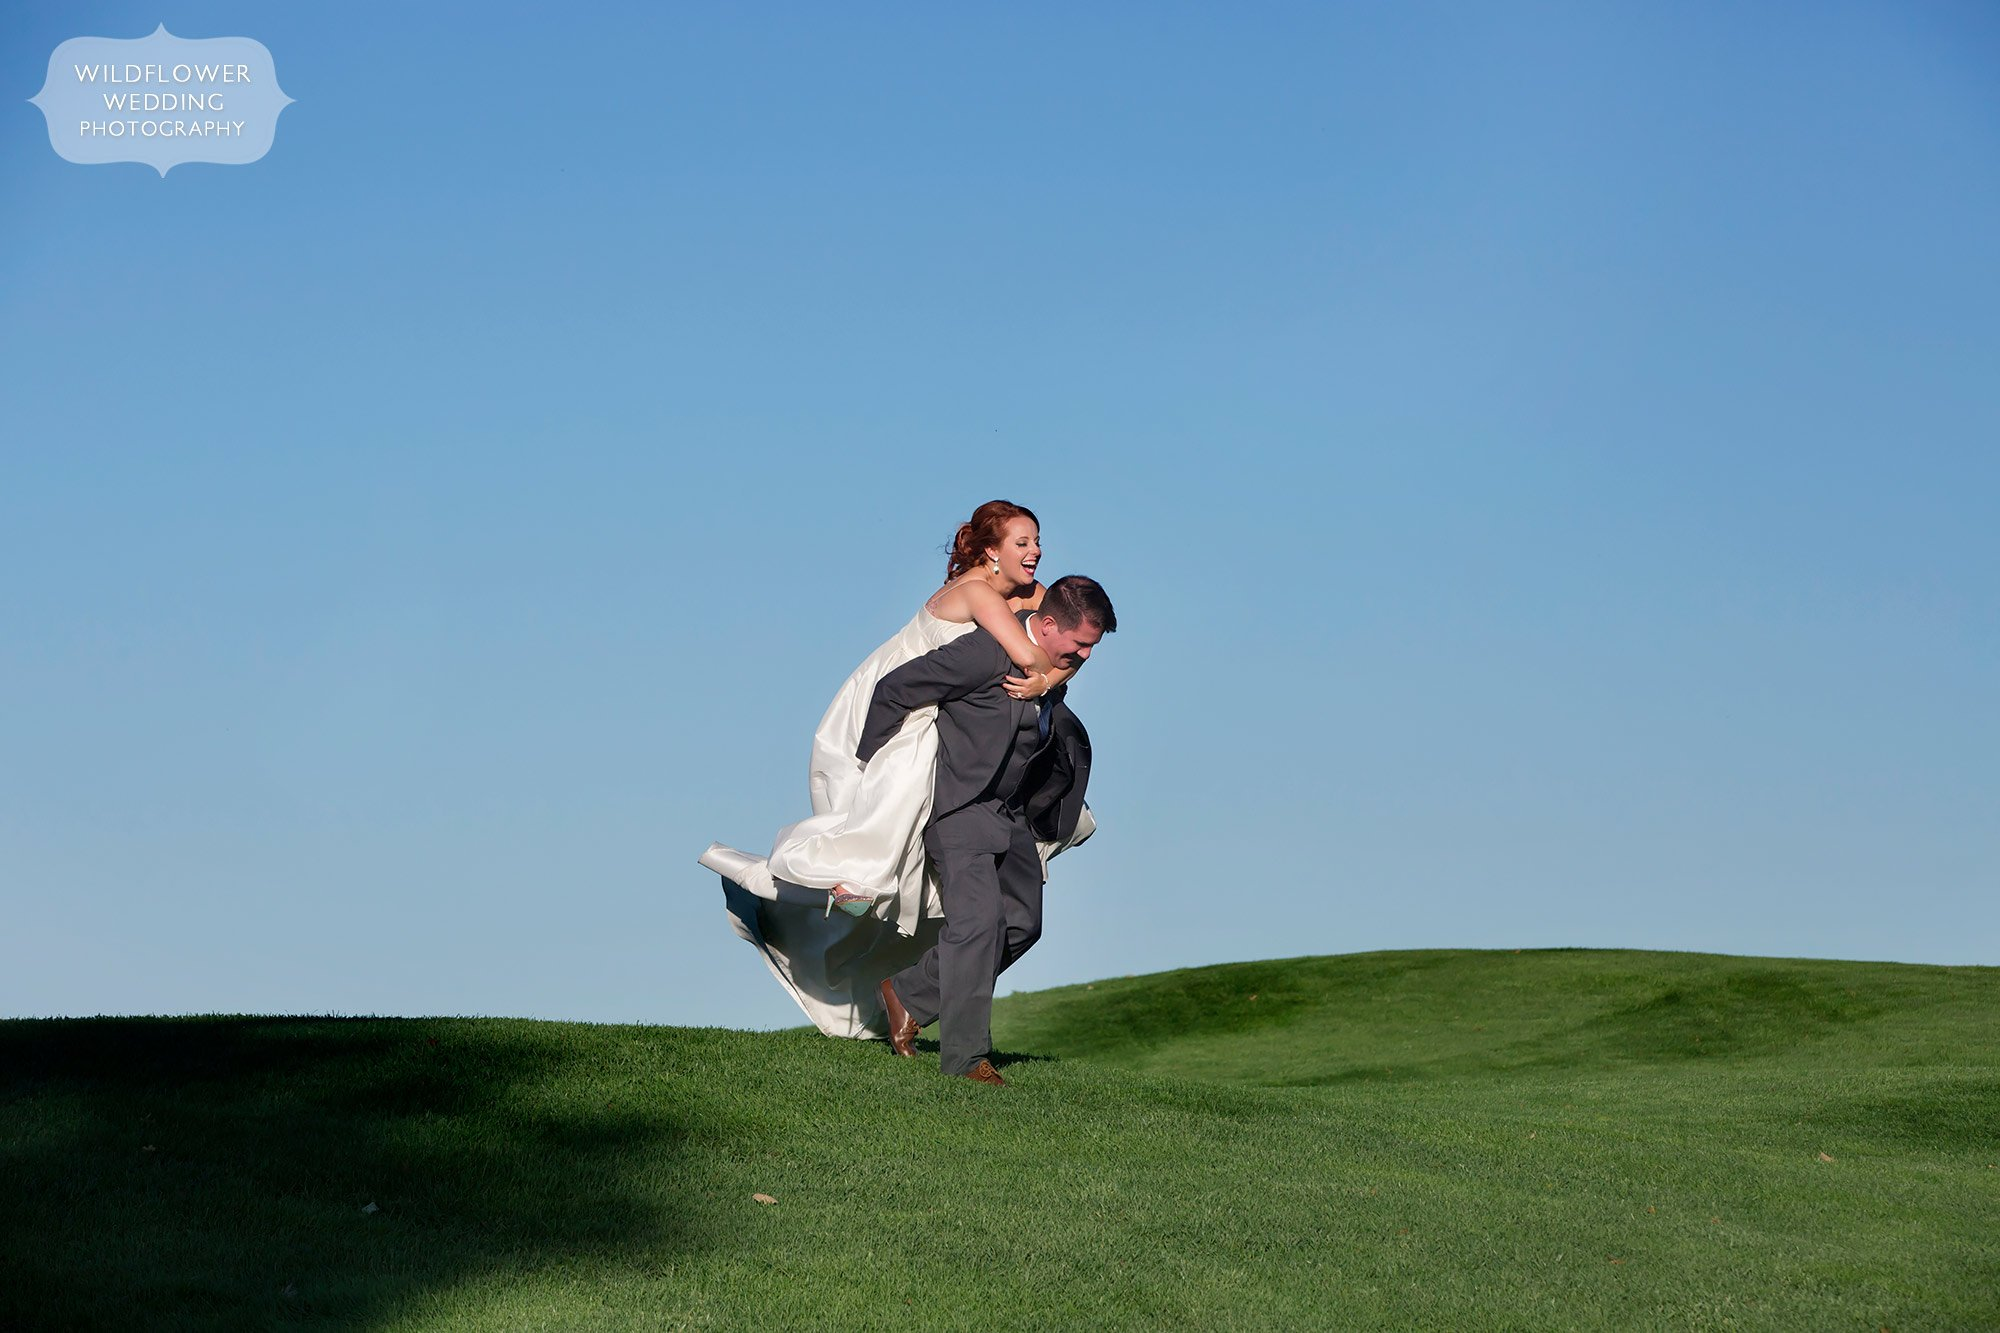 The groom gives the bride a piggyback ride at the Jeff City Country Club.